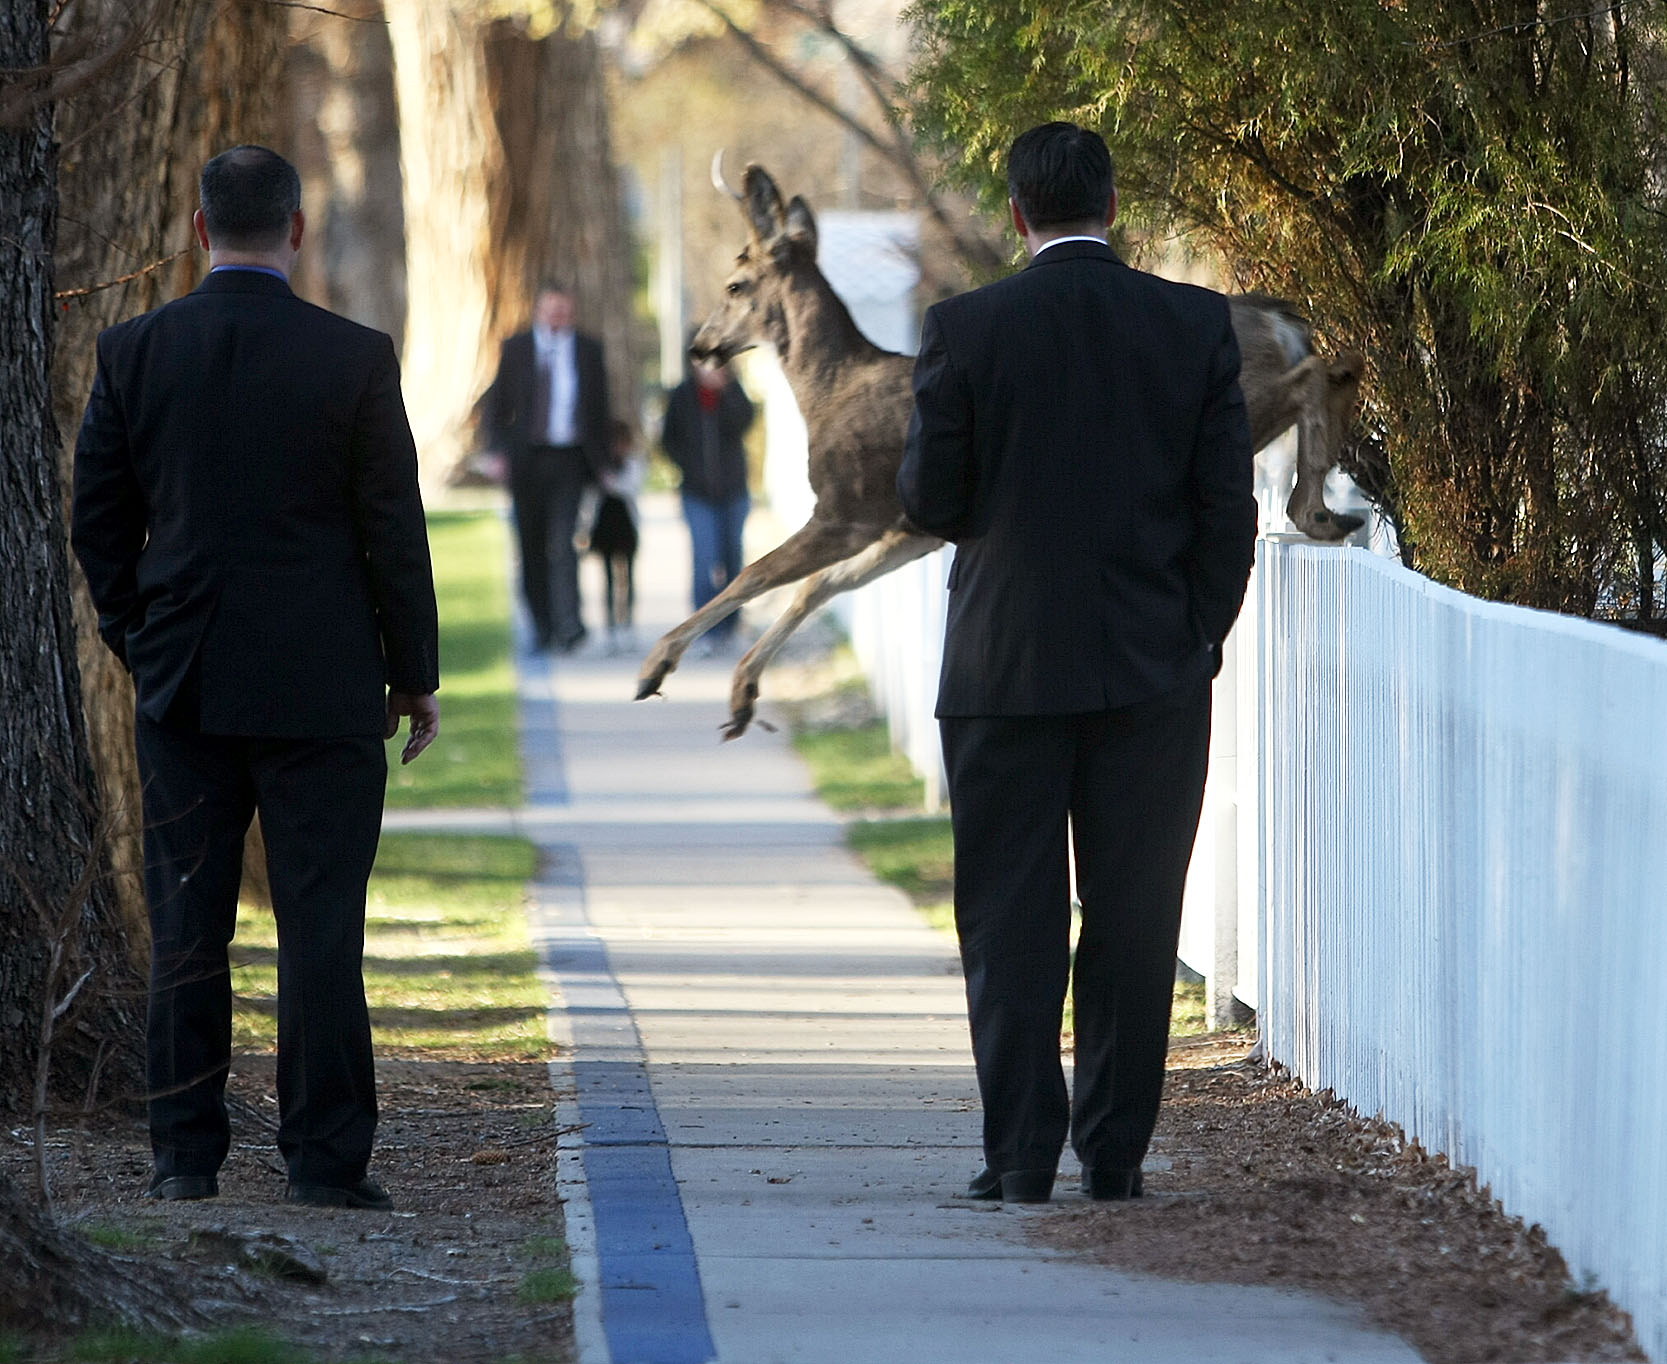 carson city nv leaping deer interrupts governor s walk to work a deer jumps in front of nevada gov brian sandoval right while he